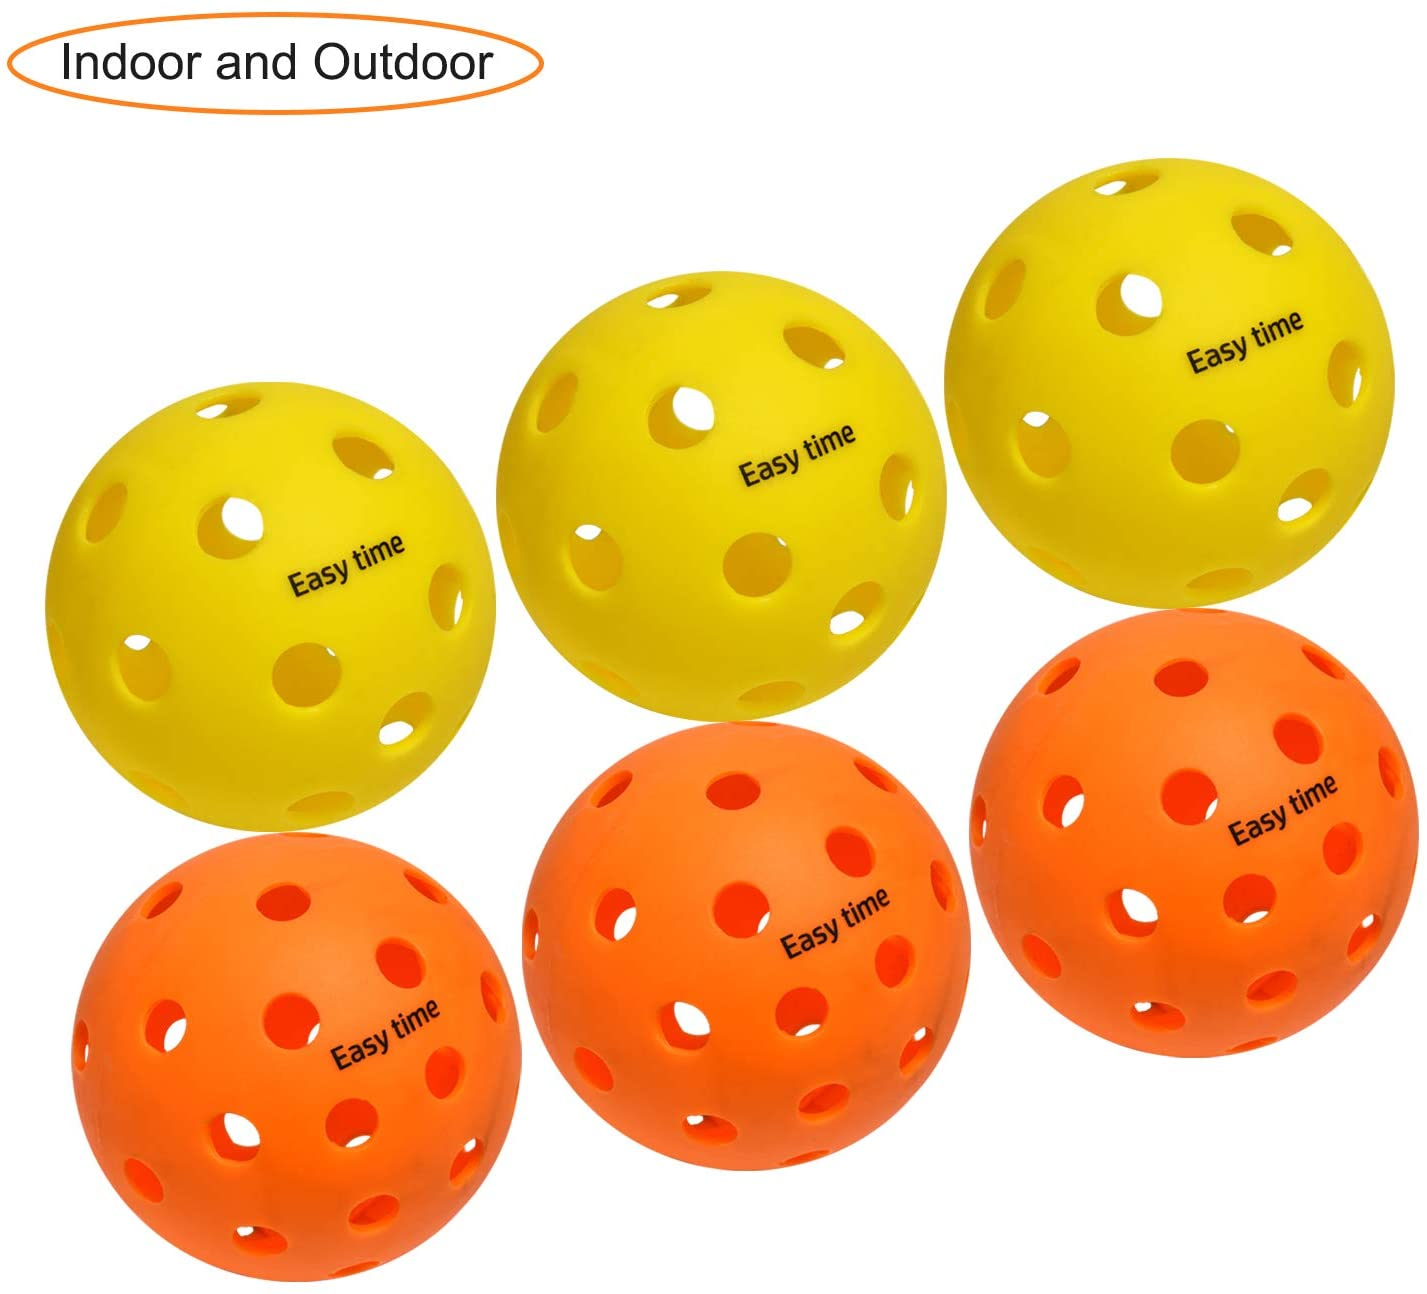 EasyTime Outdoor and Indoor Pickleball Balls, Specifically Optimized Design Pickleball Balls, Flight Trajectory is Stable, High Elasticity Yellow for Indoor Ball and Orange for Outdoor Ball